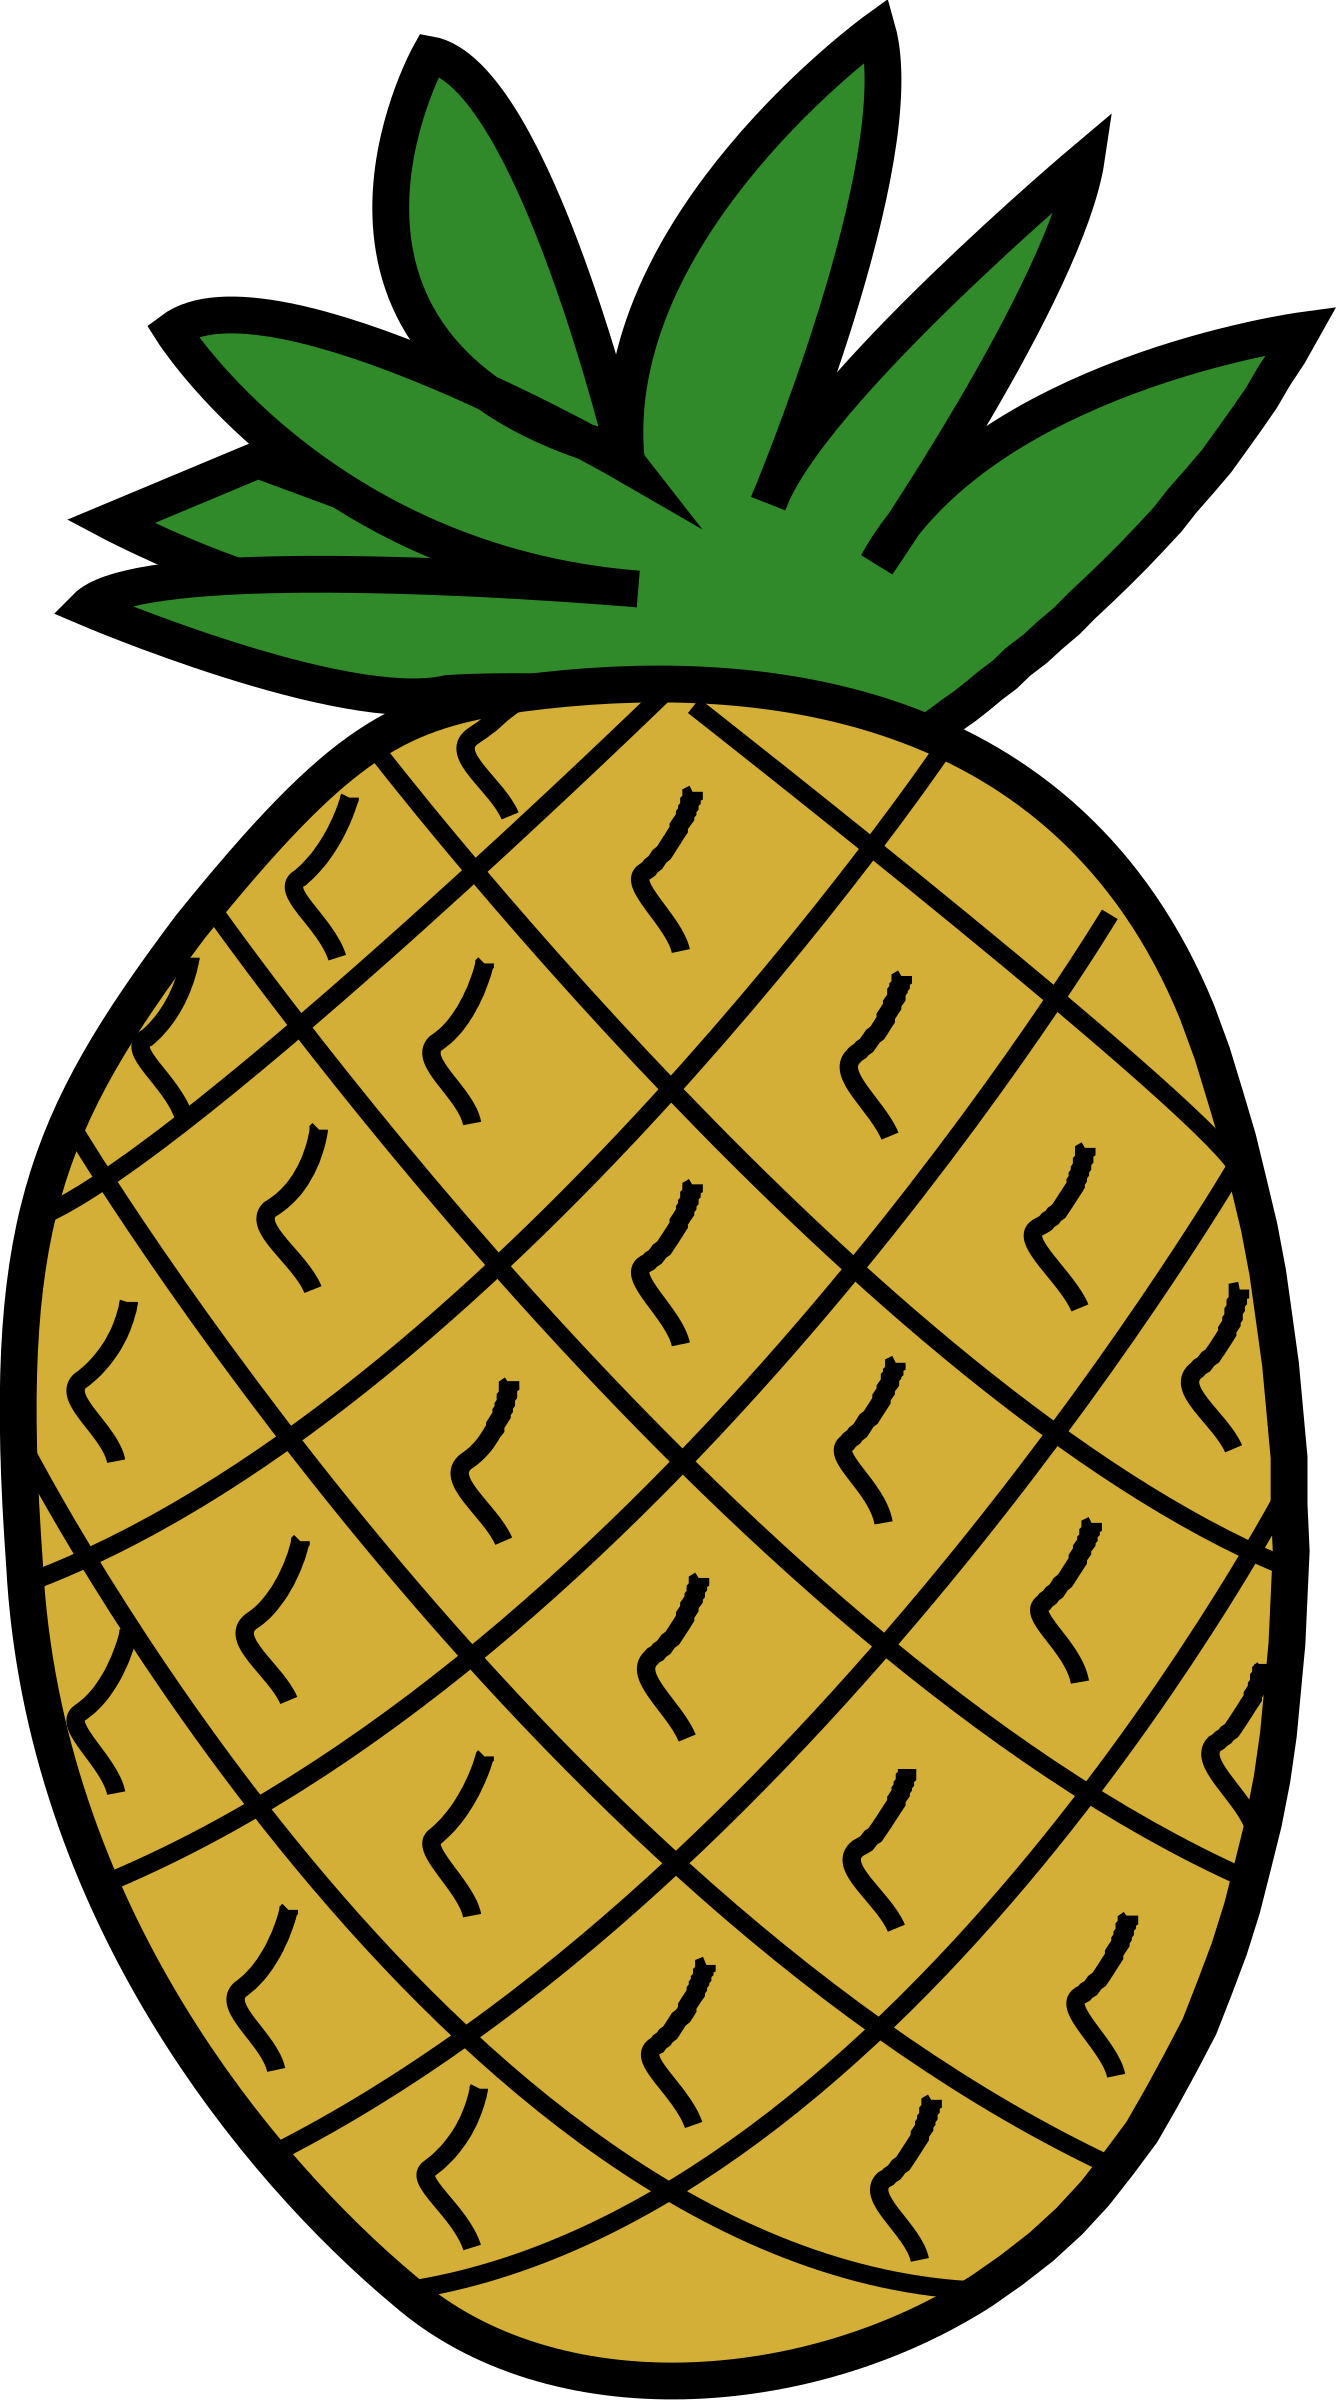 Pineapple 3 by Firkin